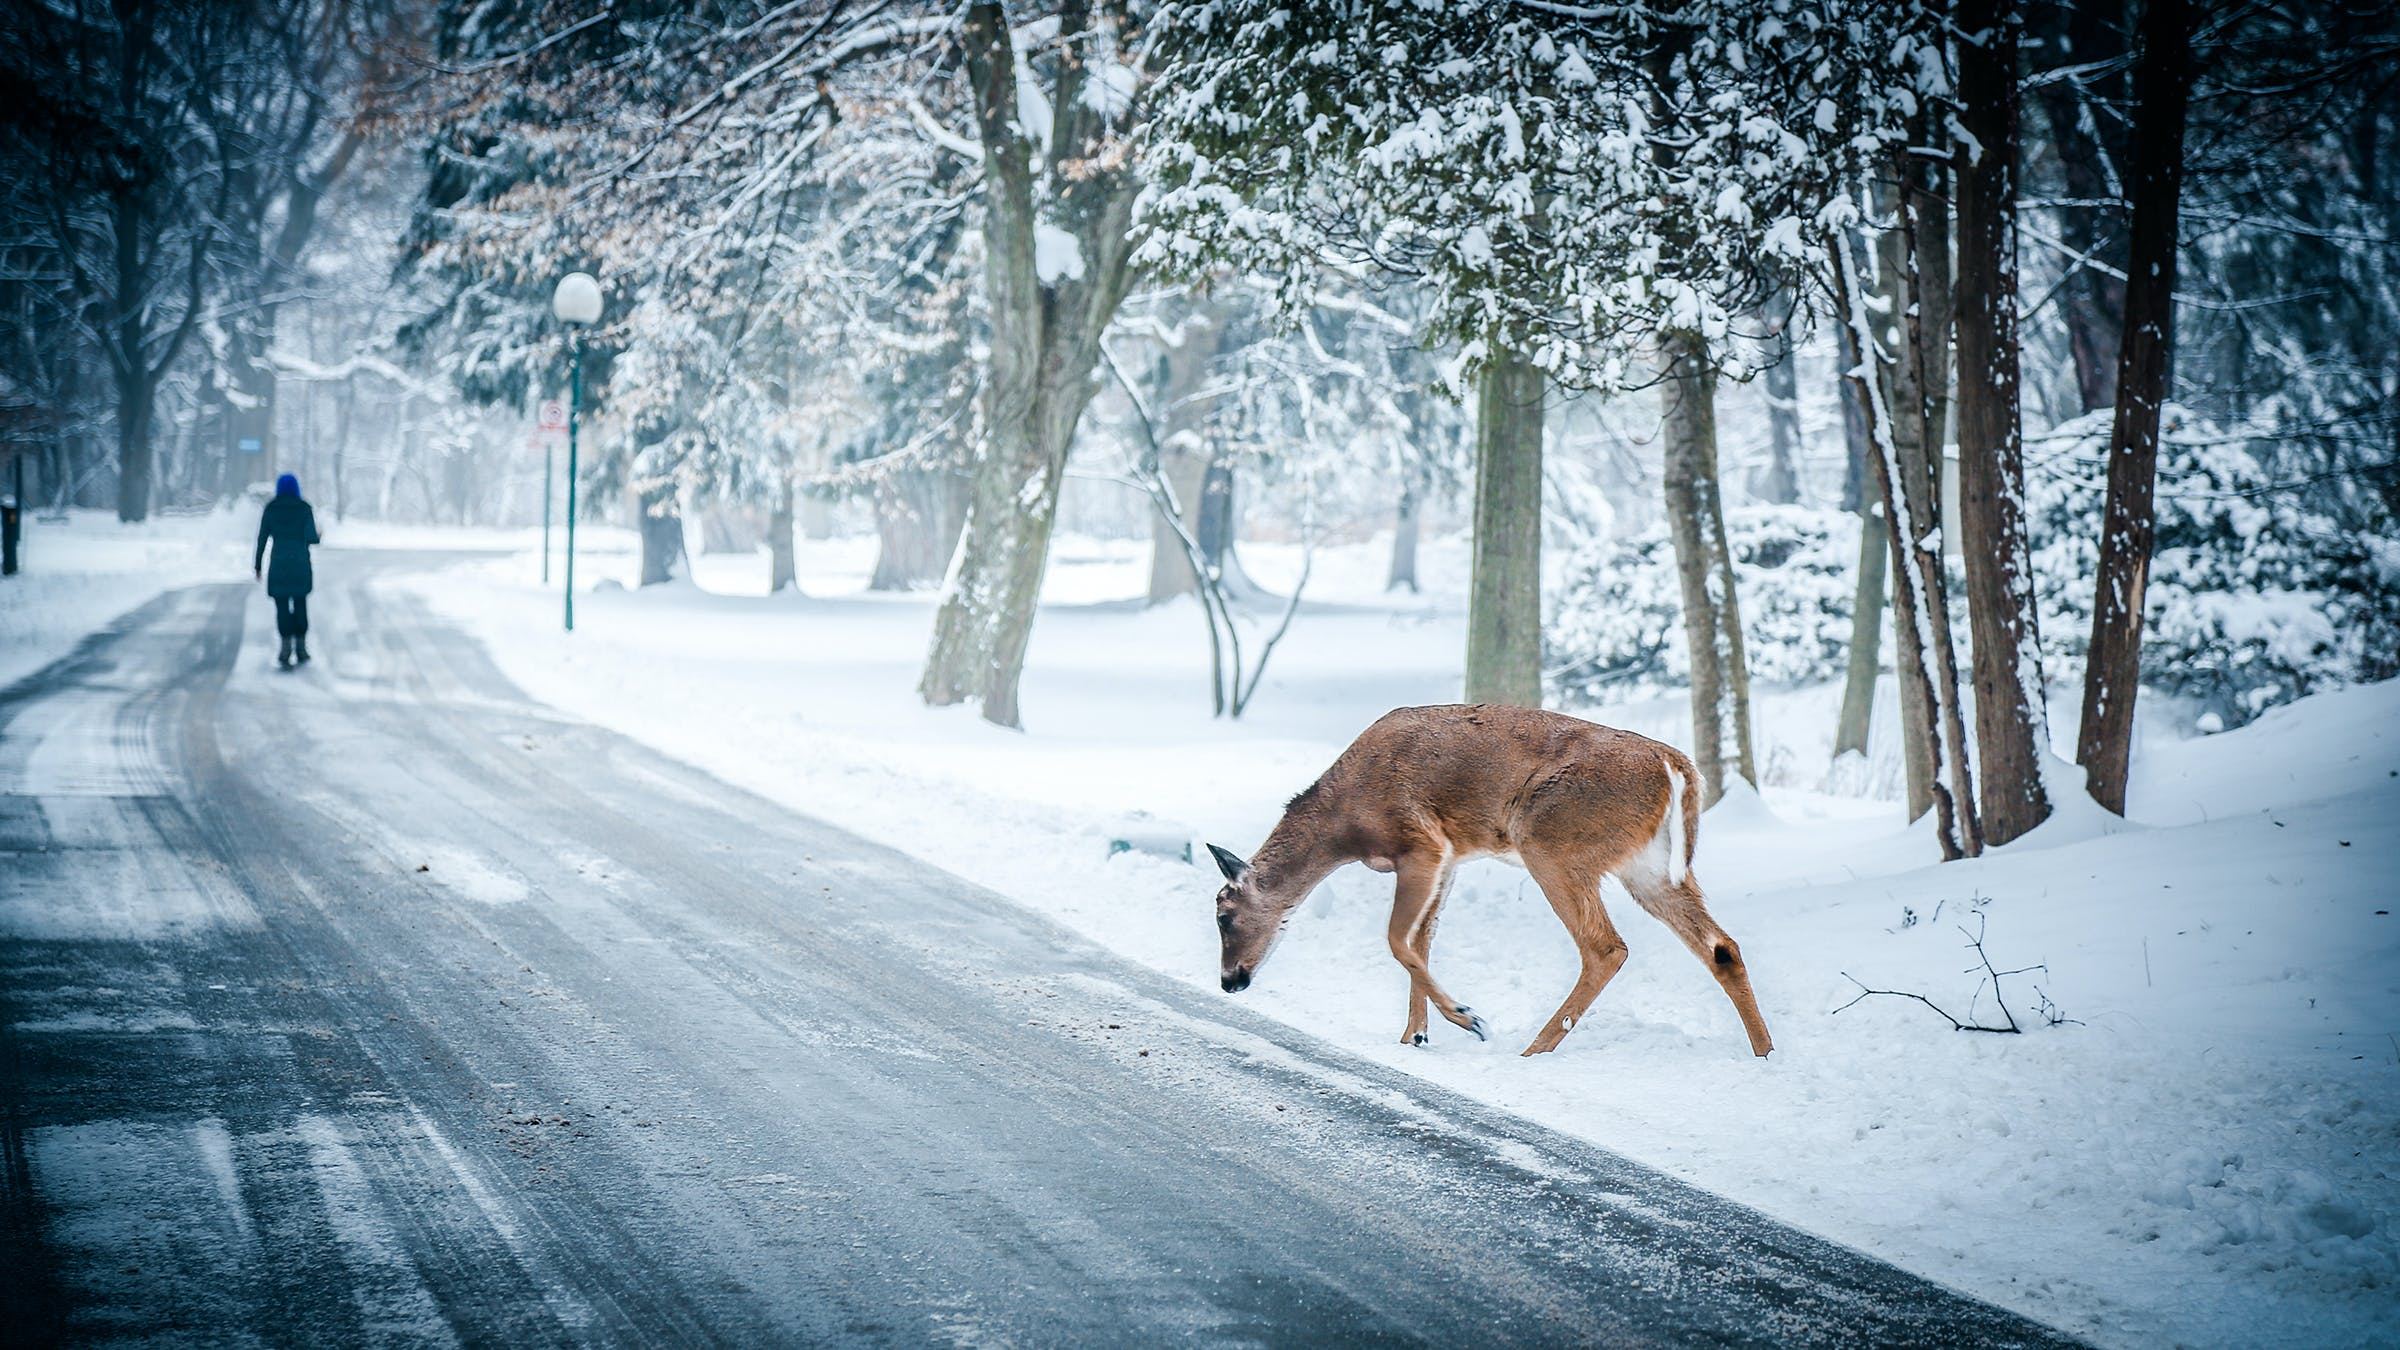 Brown Deer Beside Road